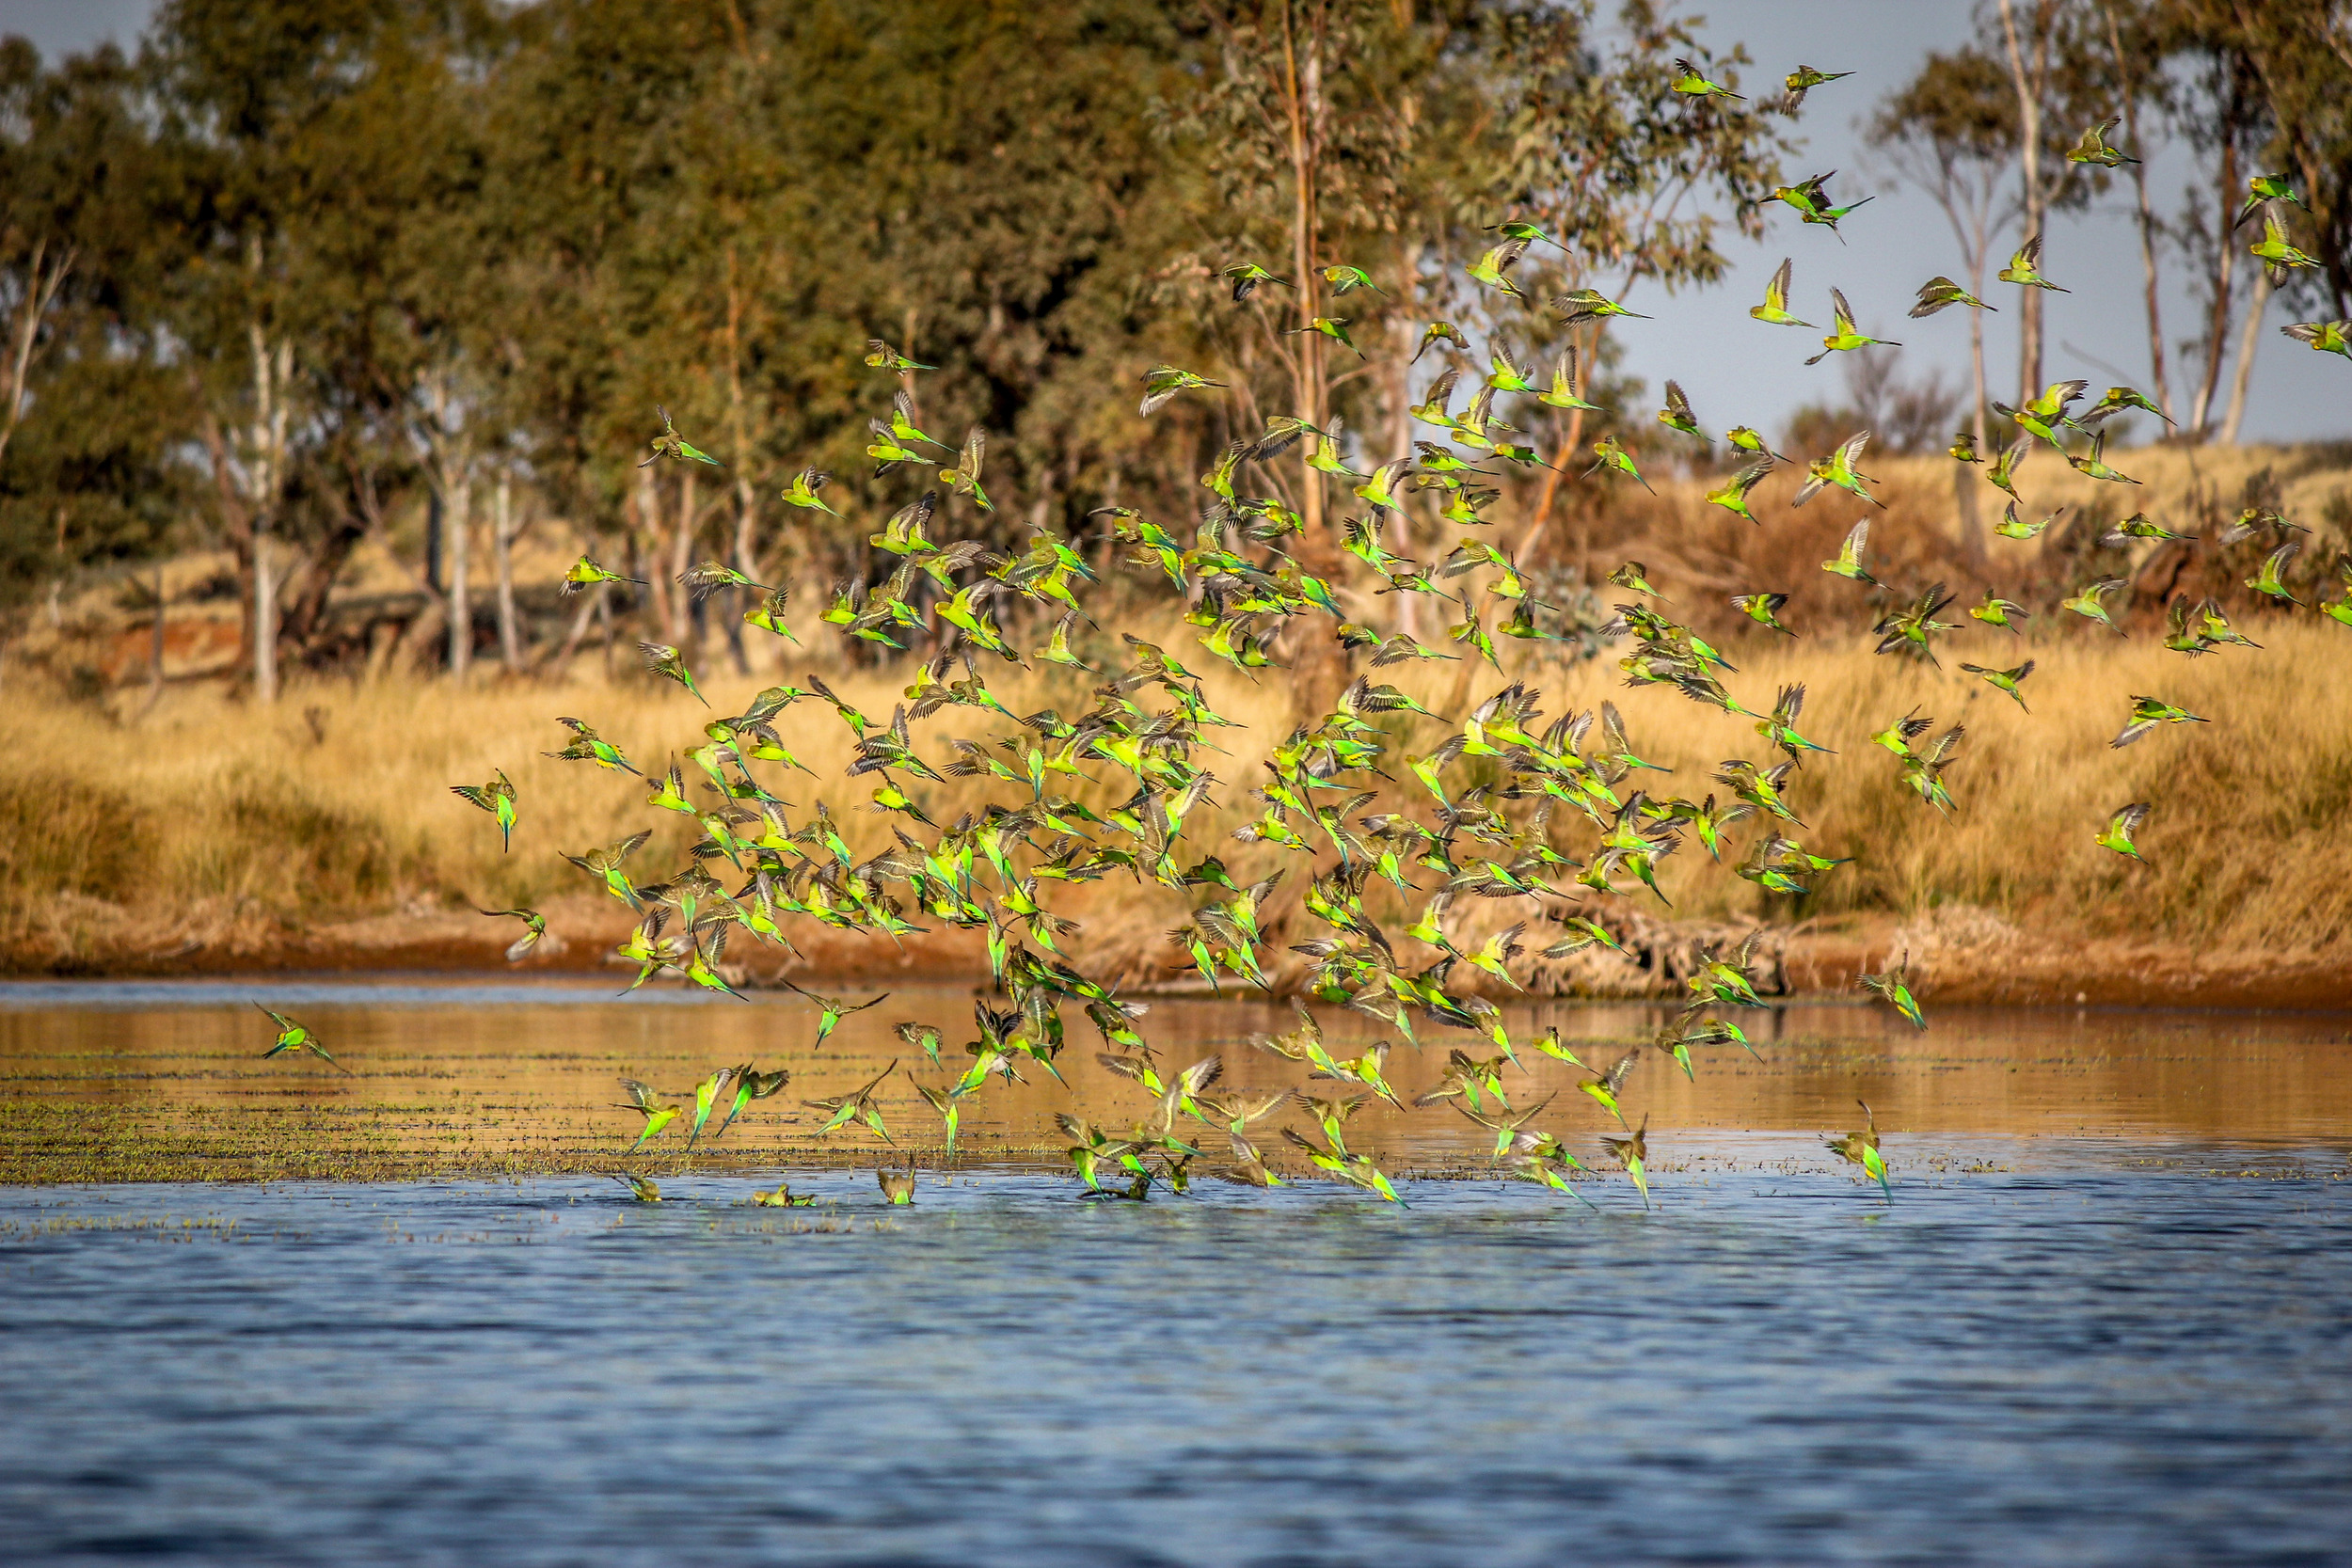 The budgies drank by just dropping into the water! Photo by Rebecca Sullivan.